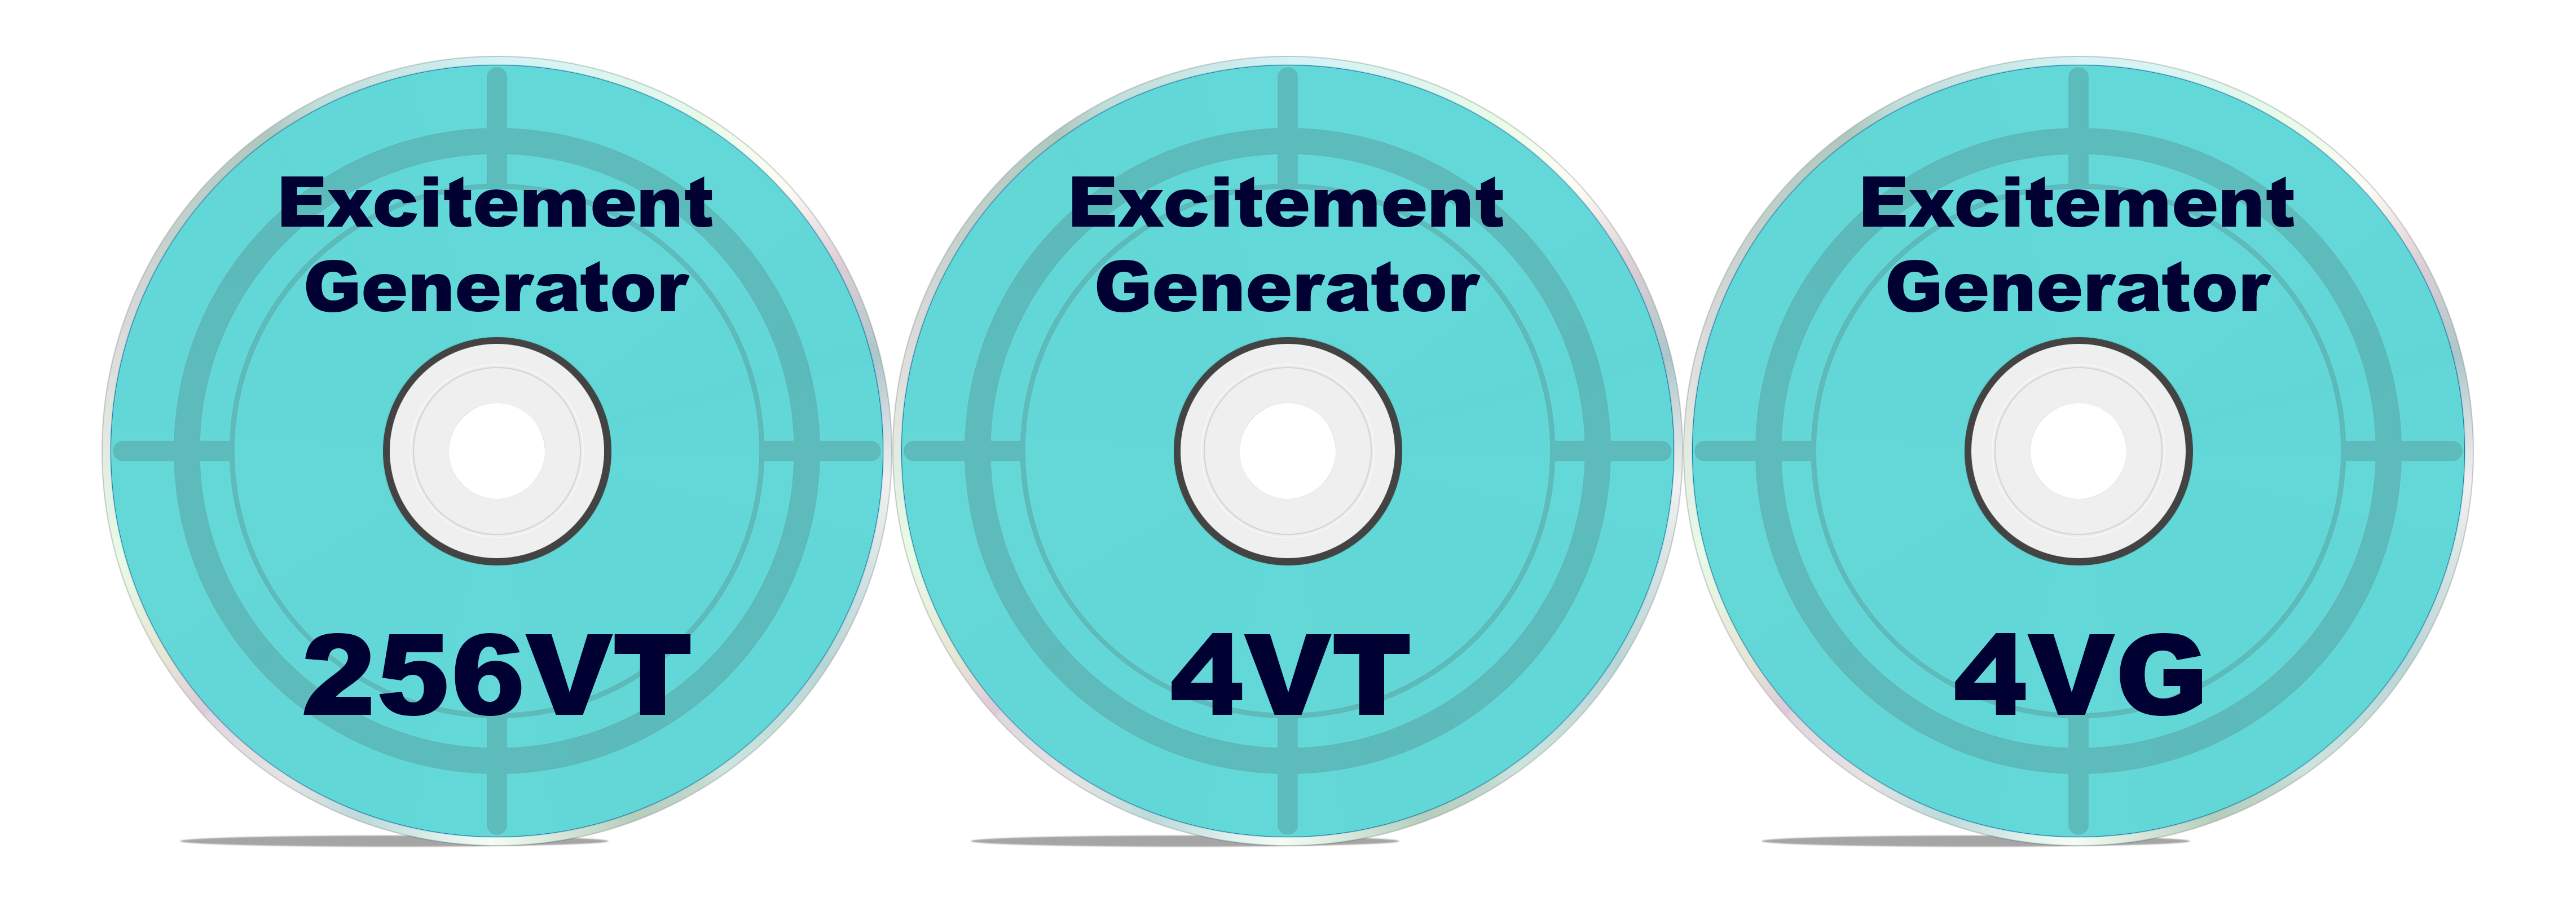 Excitement Generator